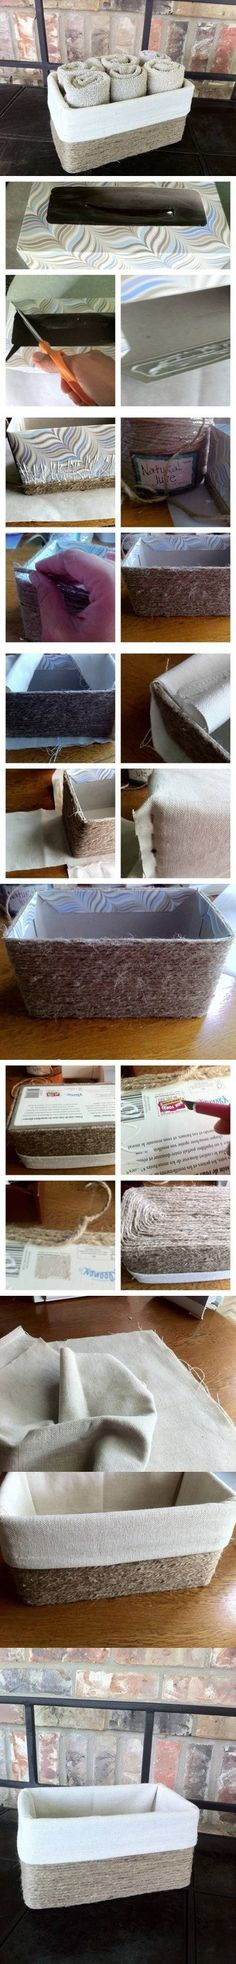 DIY Jute Basket from Cardboard Box DIY Jute Basket from Cardboard Box by diyforever Home Crafts, Fun Crafts, Diy And Crafts, Cardboard Box Diy, Ideias Diy, Diy Storage, Decorative Storage, Storage Boxes, Clothes Storage